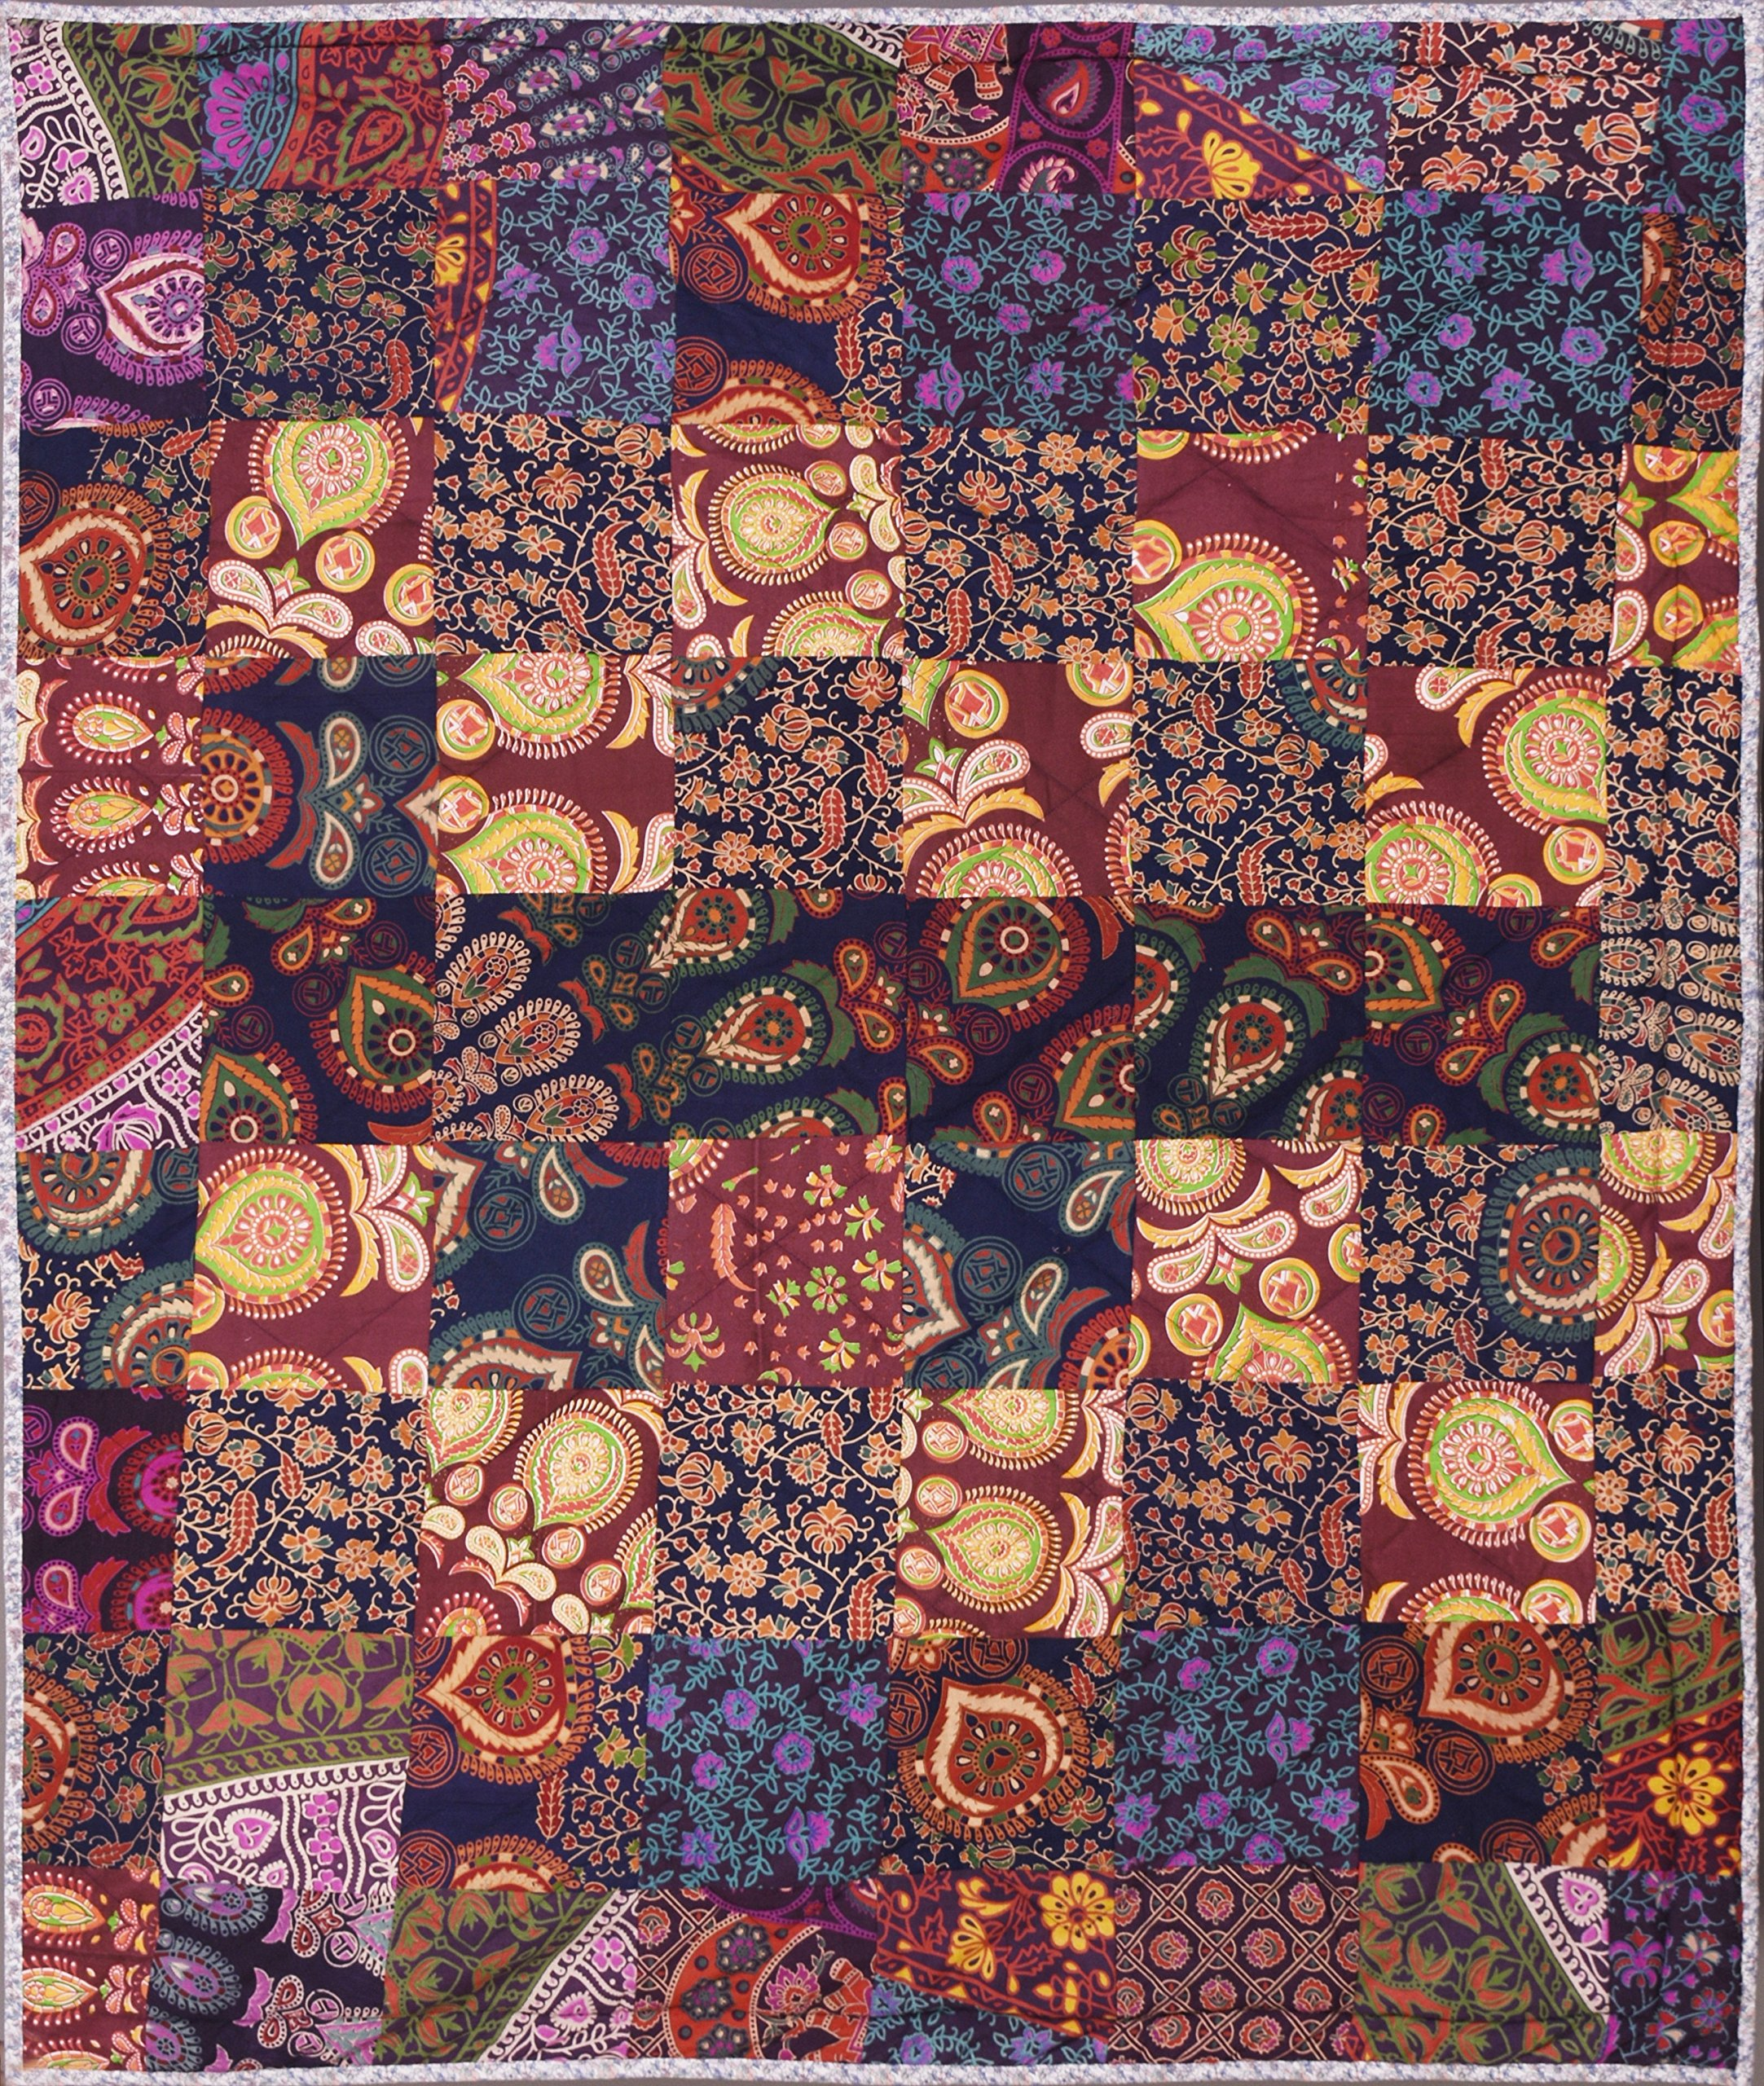 CRAFT N CRAFT INDIA Tapestries Comforter Cotton Quilt Blanket Bohemian Bedding Size 50 x 60 inches